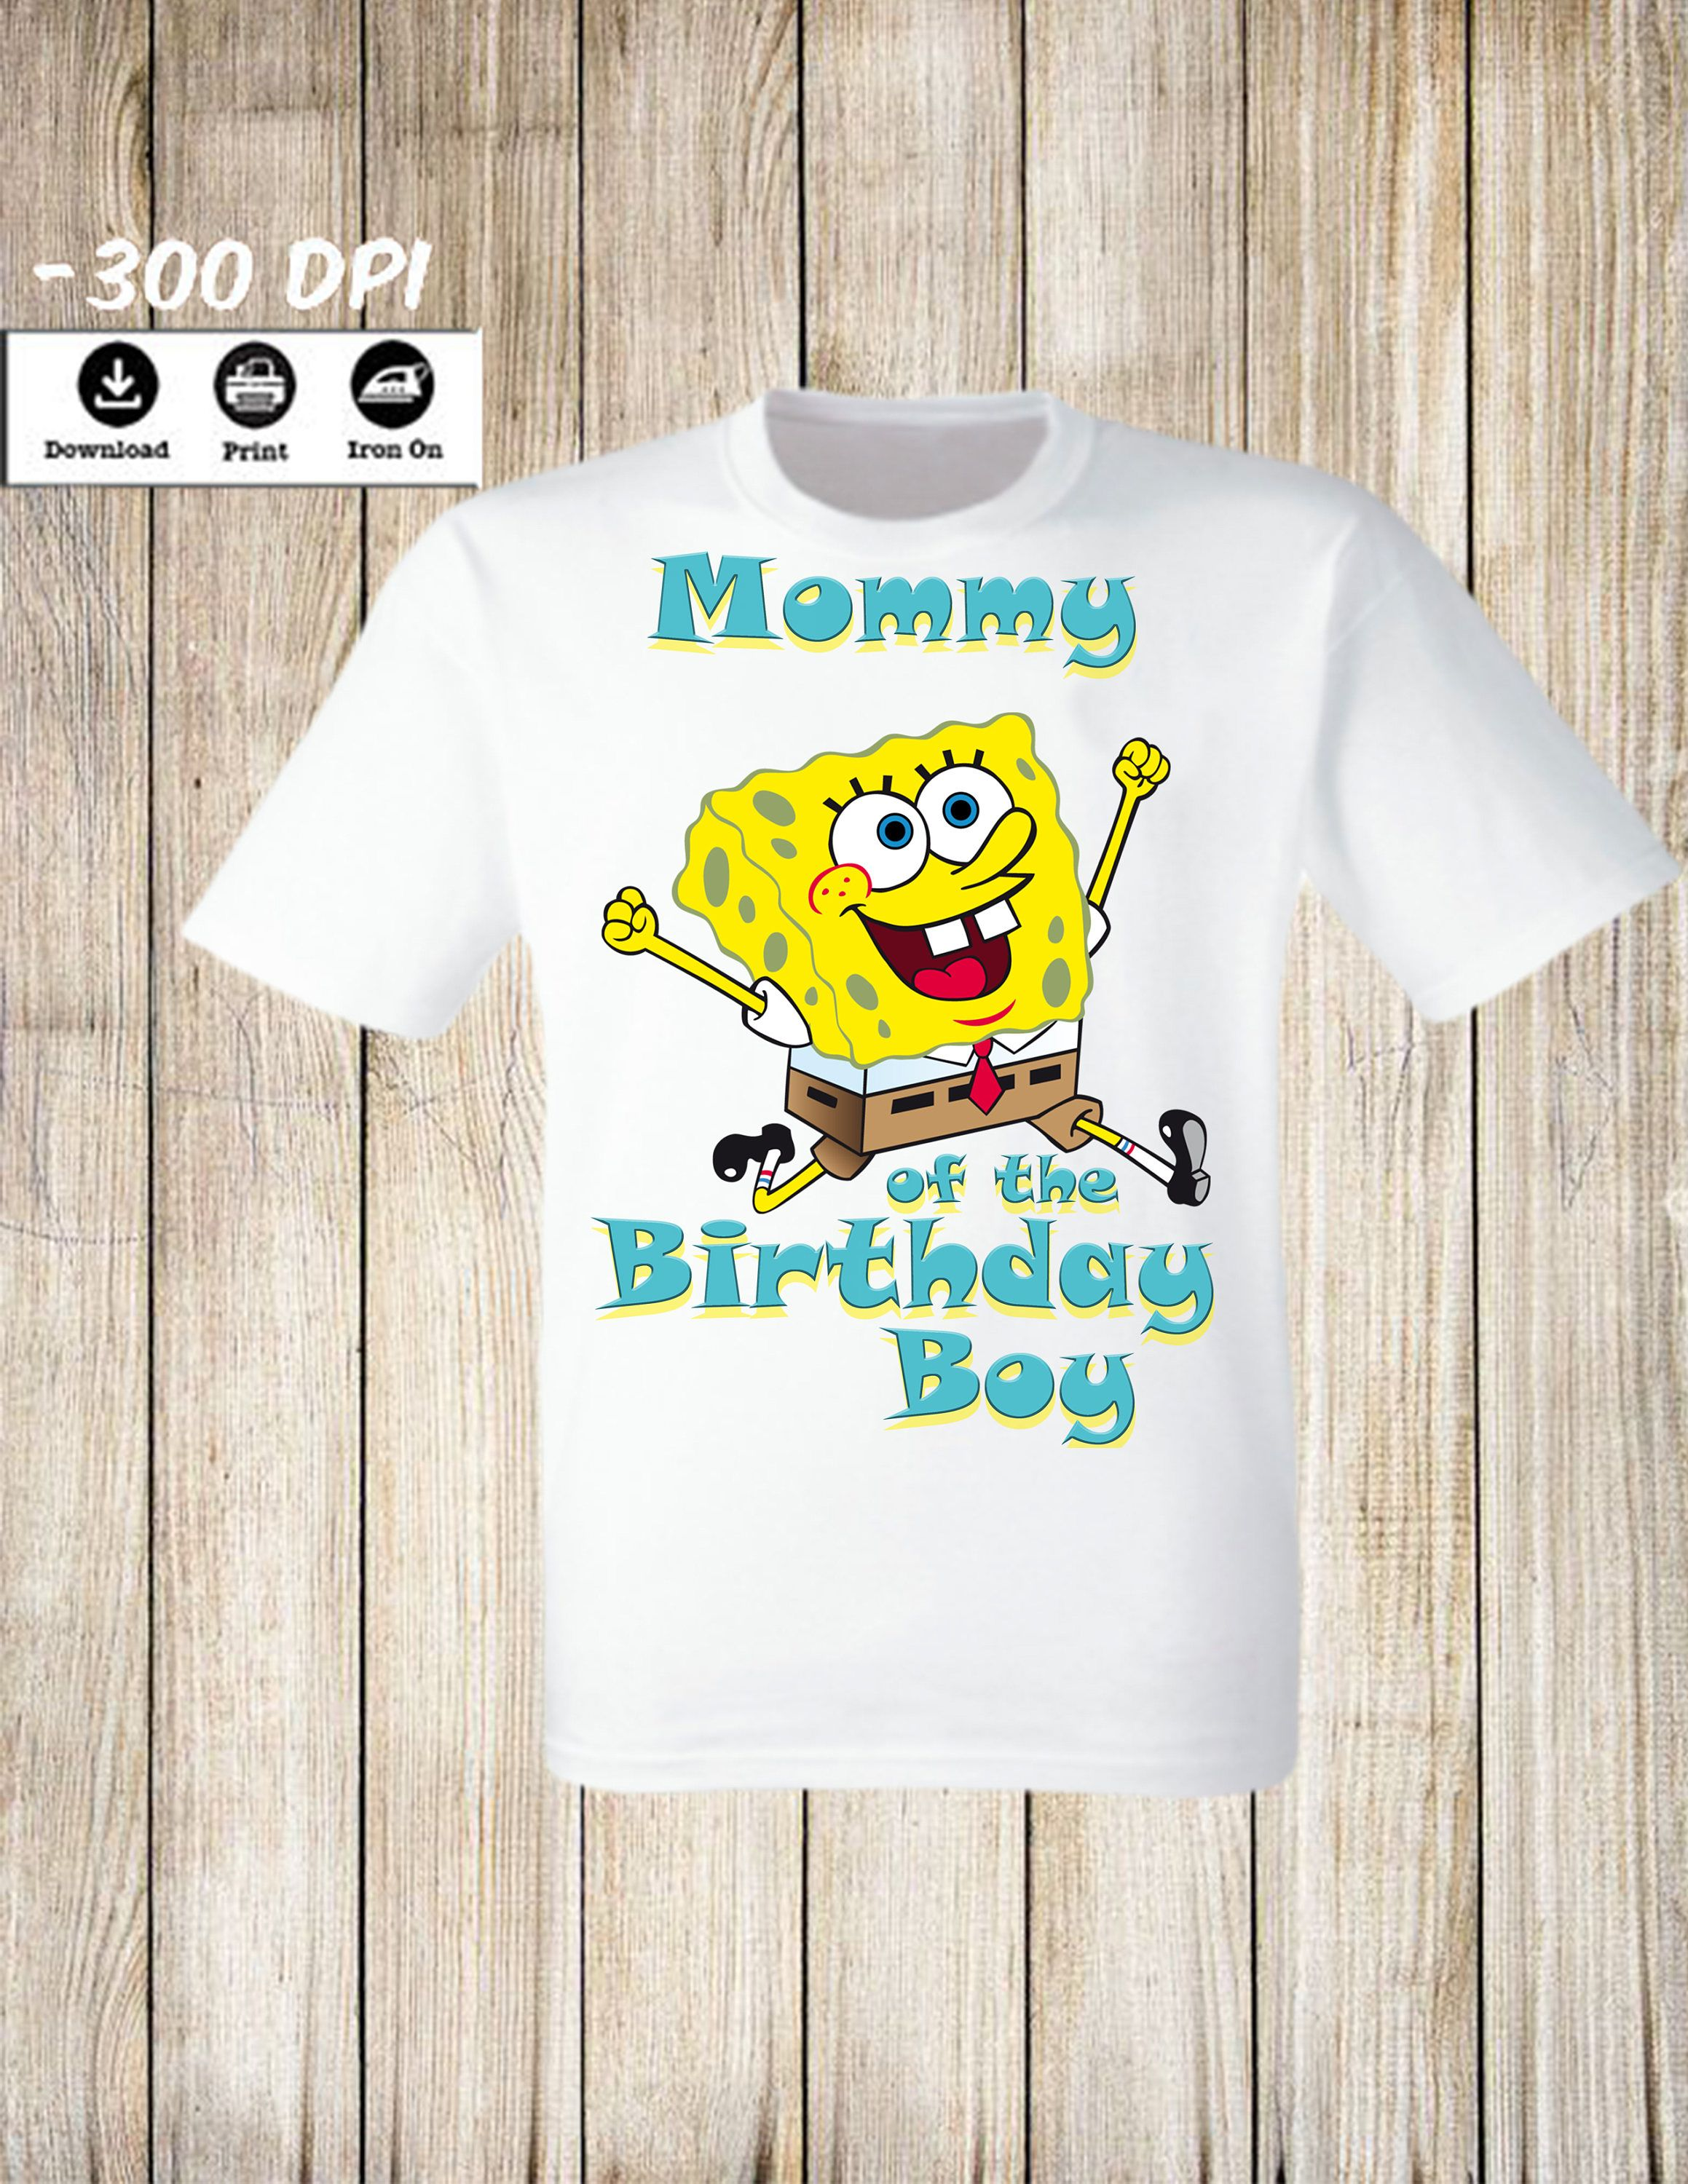 53ced419a8 SpongeBob Iron On Transfer Mommy of the Birthday Boy shirt . Sponge Bob  Square Pants Personalized Mommy of the BB Party Image.